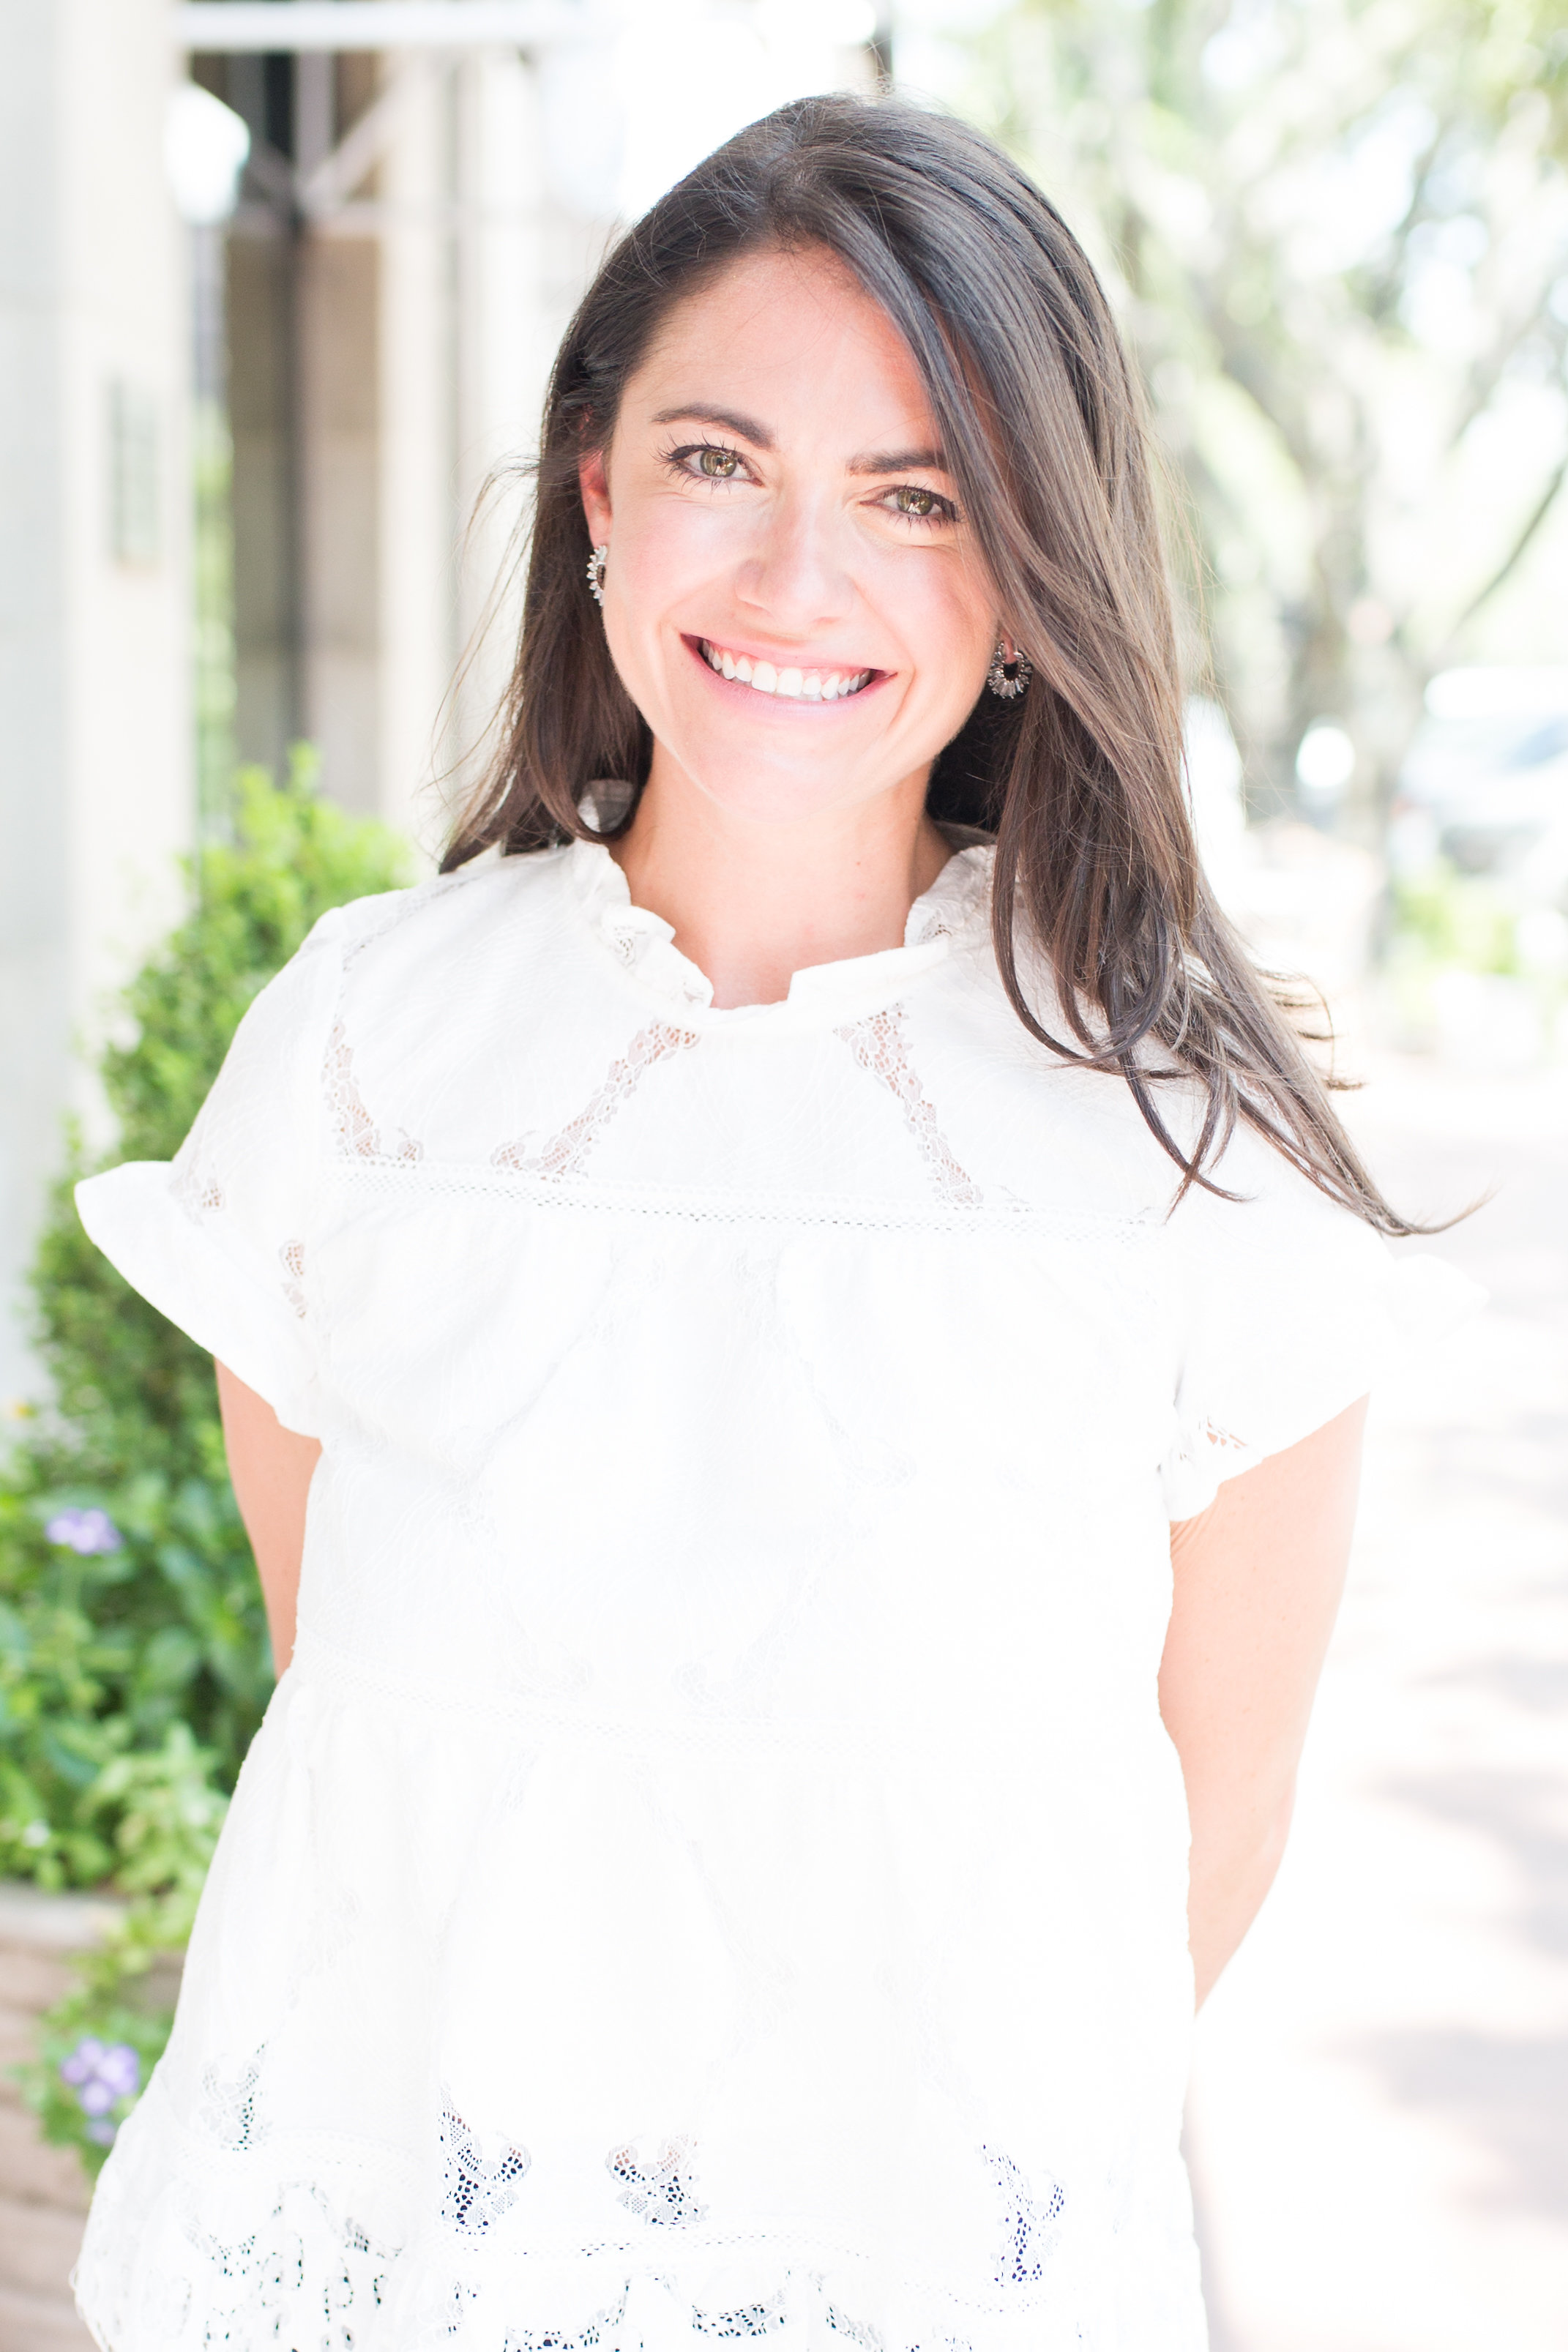 Whitney Williams Rowell - Miracle Milkookies, Founder and CEO | Collective Thirty One, Co-FounderInstagram: @whitneywrowell @miraclemilkookies